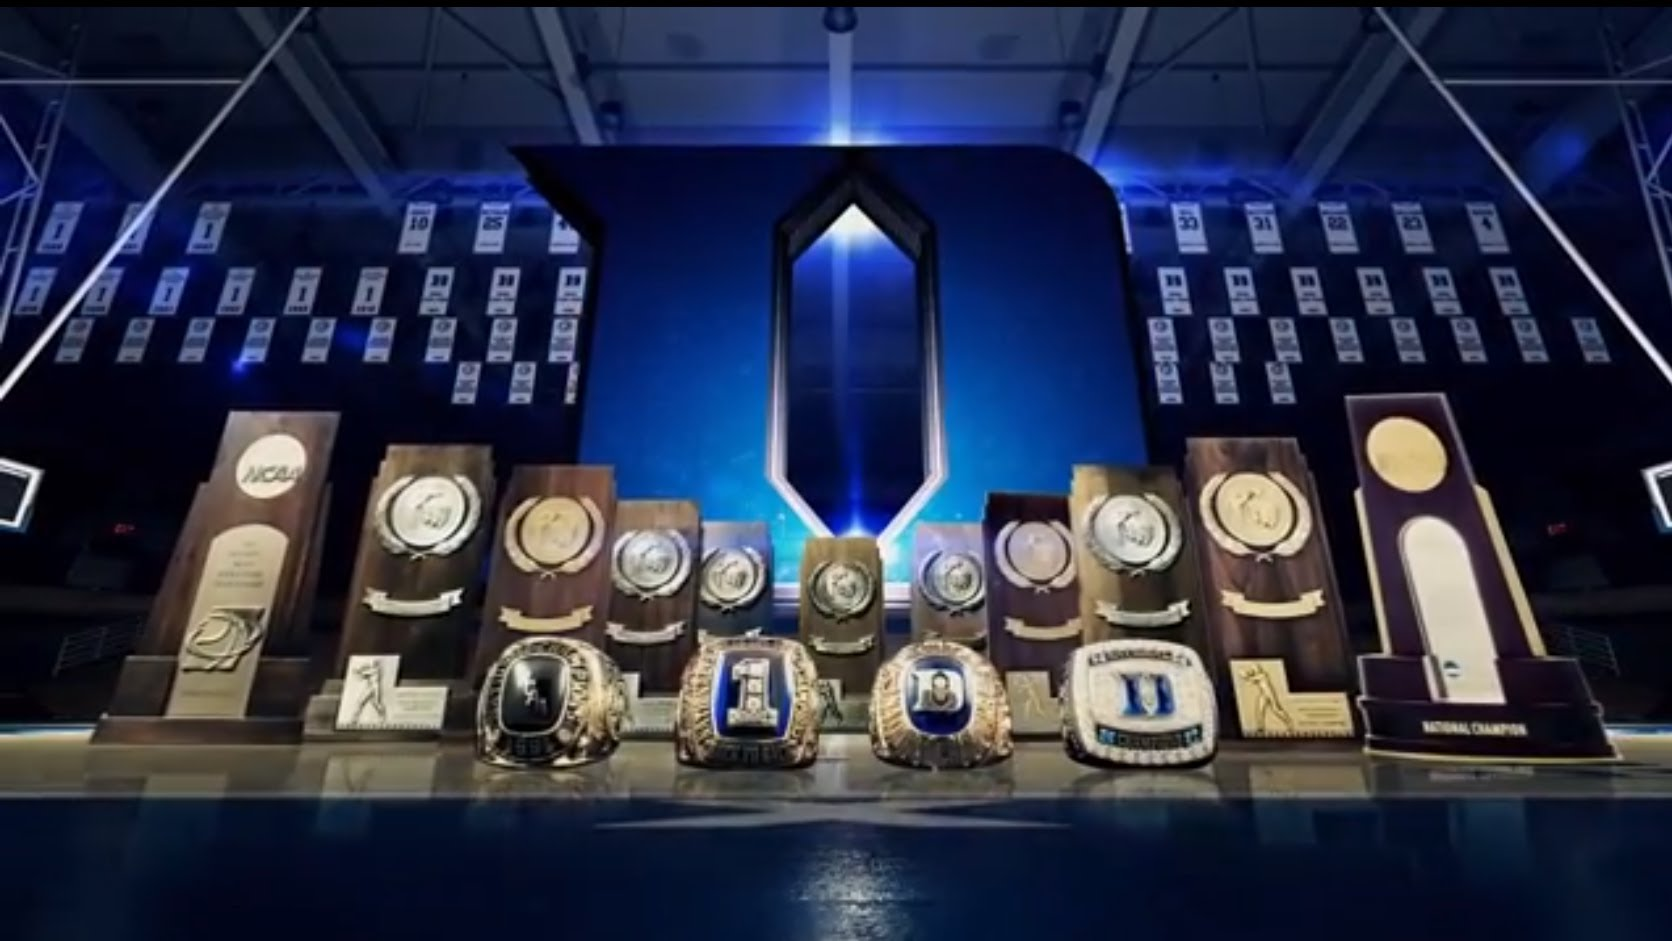 Duke Basketball Desktop Backgrounds 2141470 Hd Wallpaper